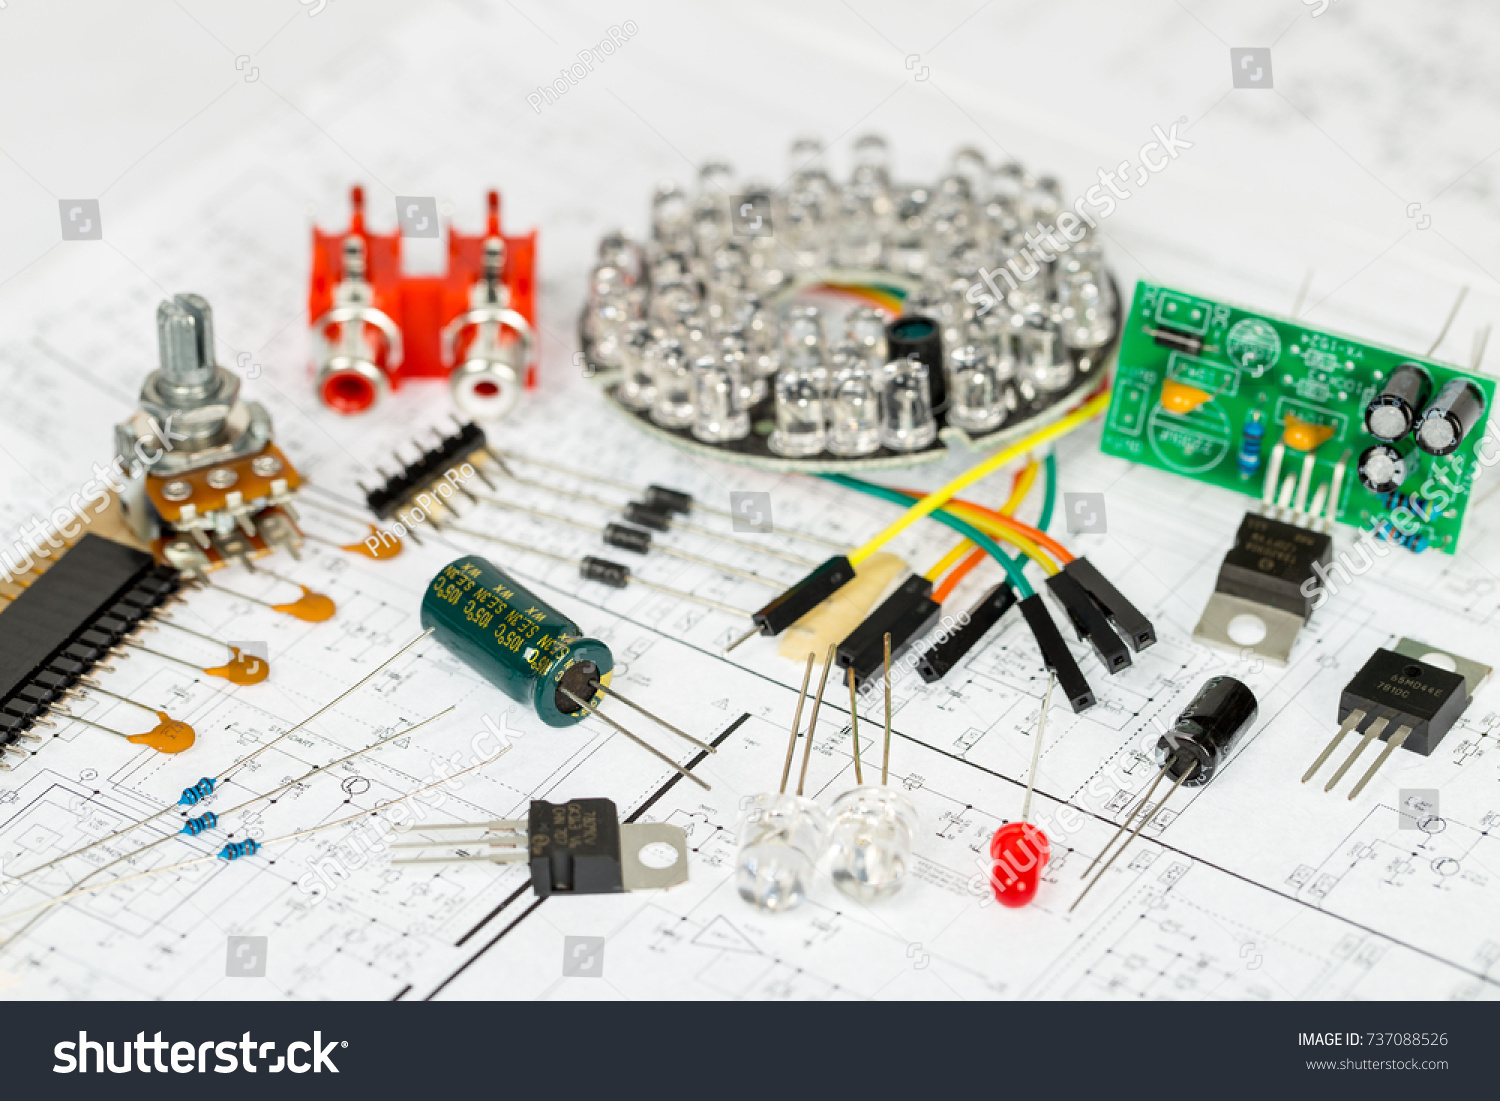 Electronic components over electronic diagram, printed wiring, transistors,  integrated circuits, capacitors,